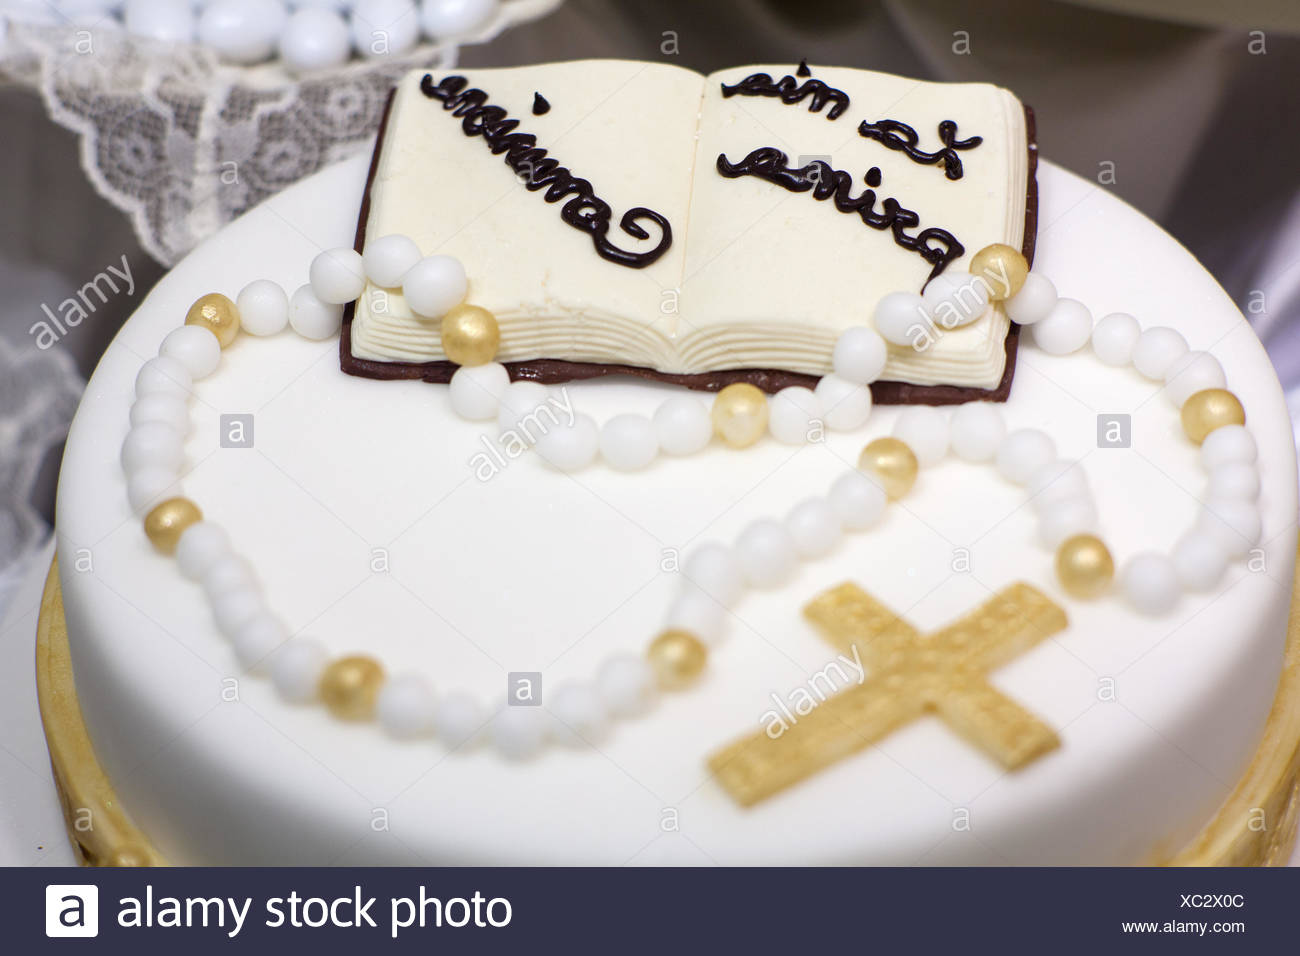 Fabulous Religious Sweet Party Celebration Cake Pie Cakes Communion Funny Birthday Cards Online Inifodamsfinfo